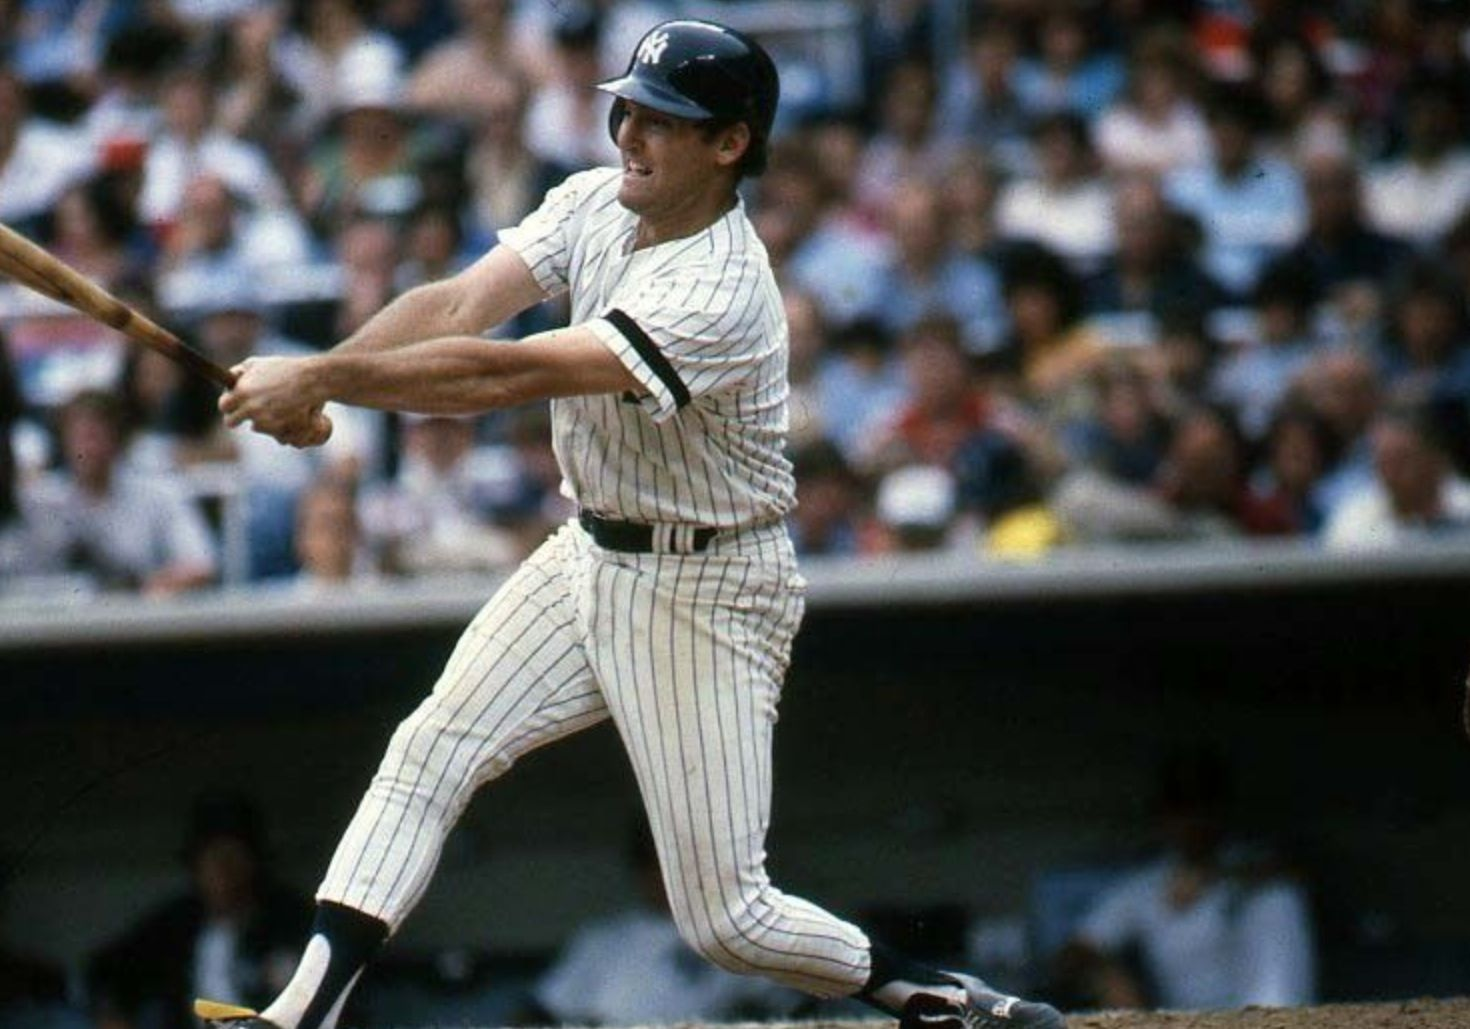 Graig Nettles New York Yankees New York Yankees Baseball Ny Yankees Yankees Baseball